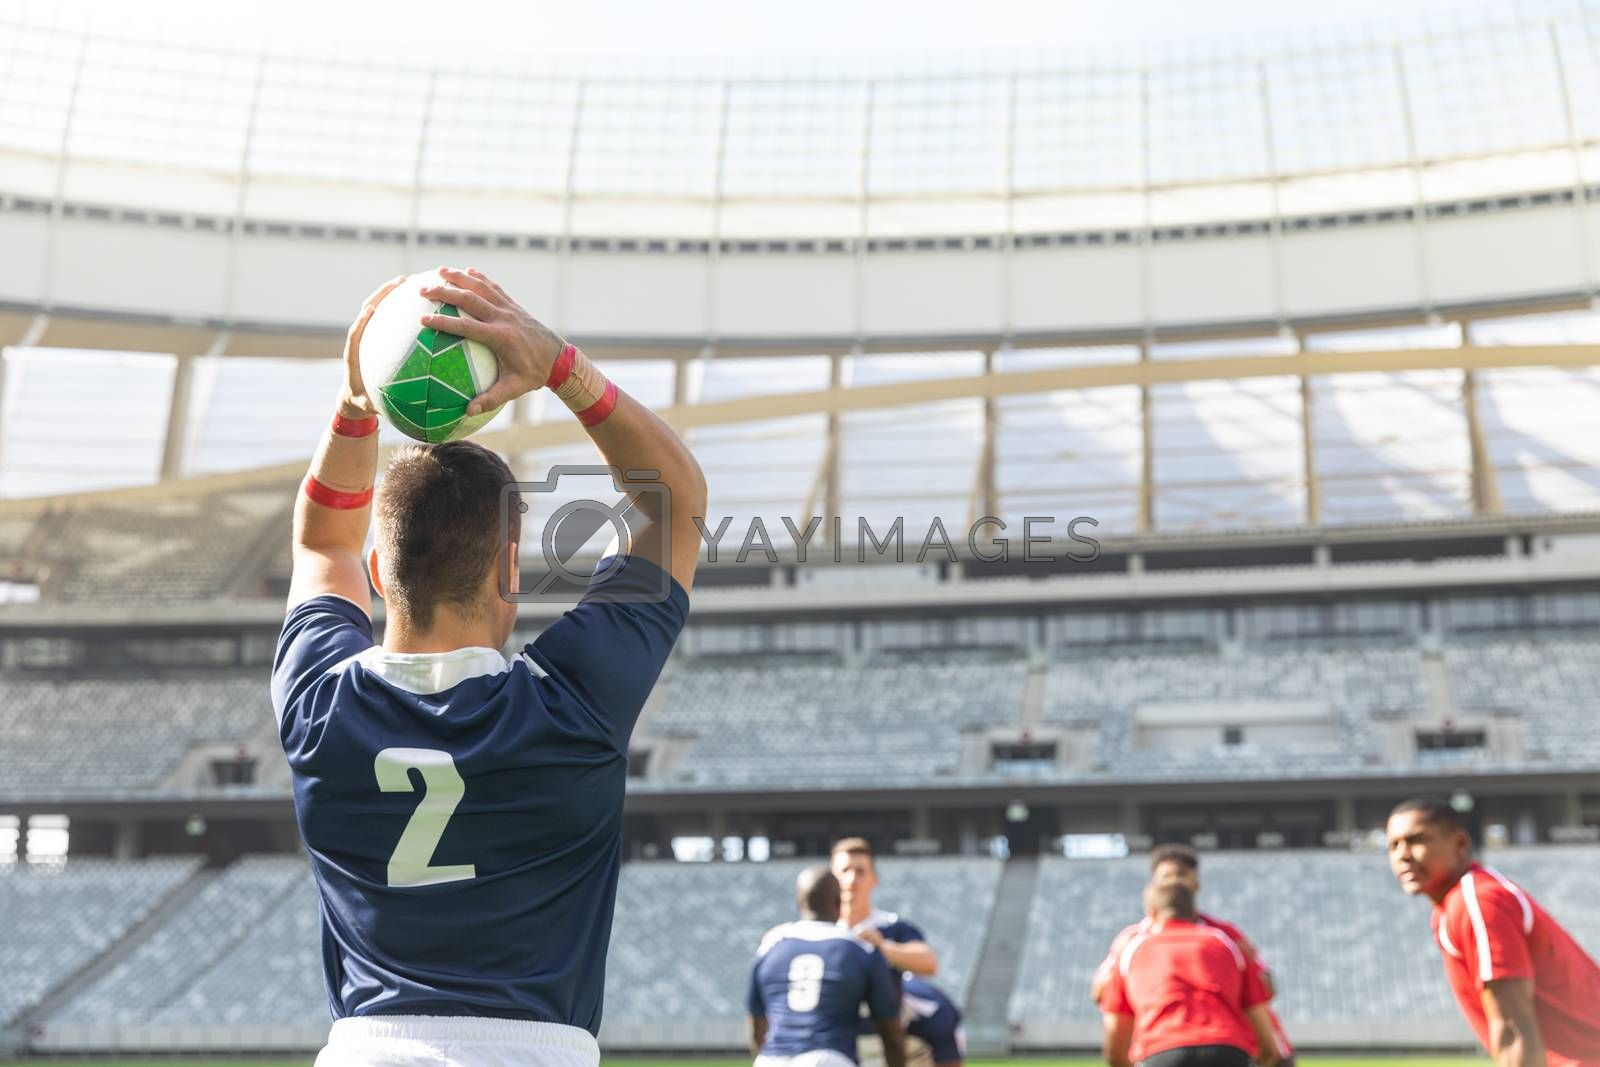 Rear view of Caucasian male rugby player throwing rugby ball while diverse rugby players are waiting for him to throw it in stadium